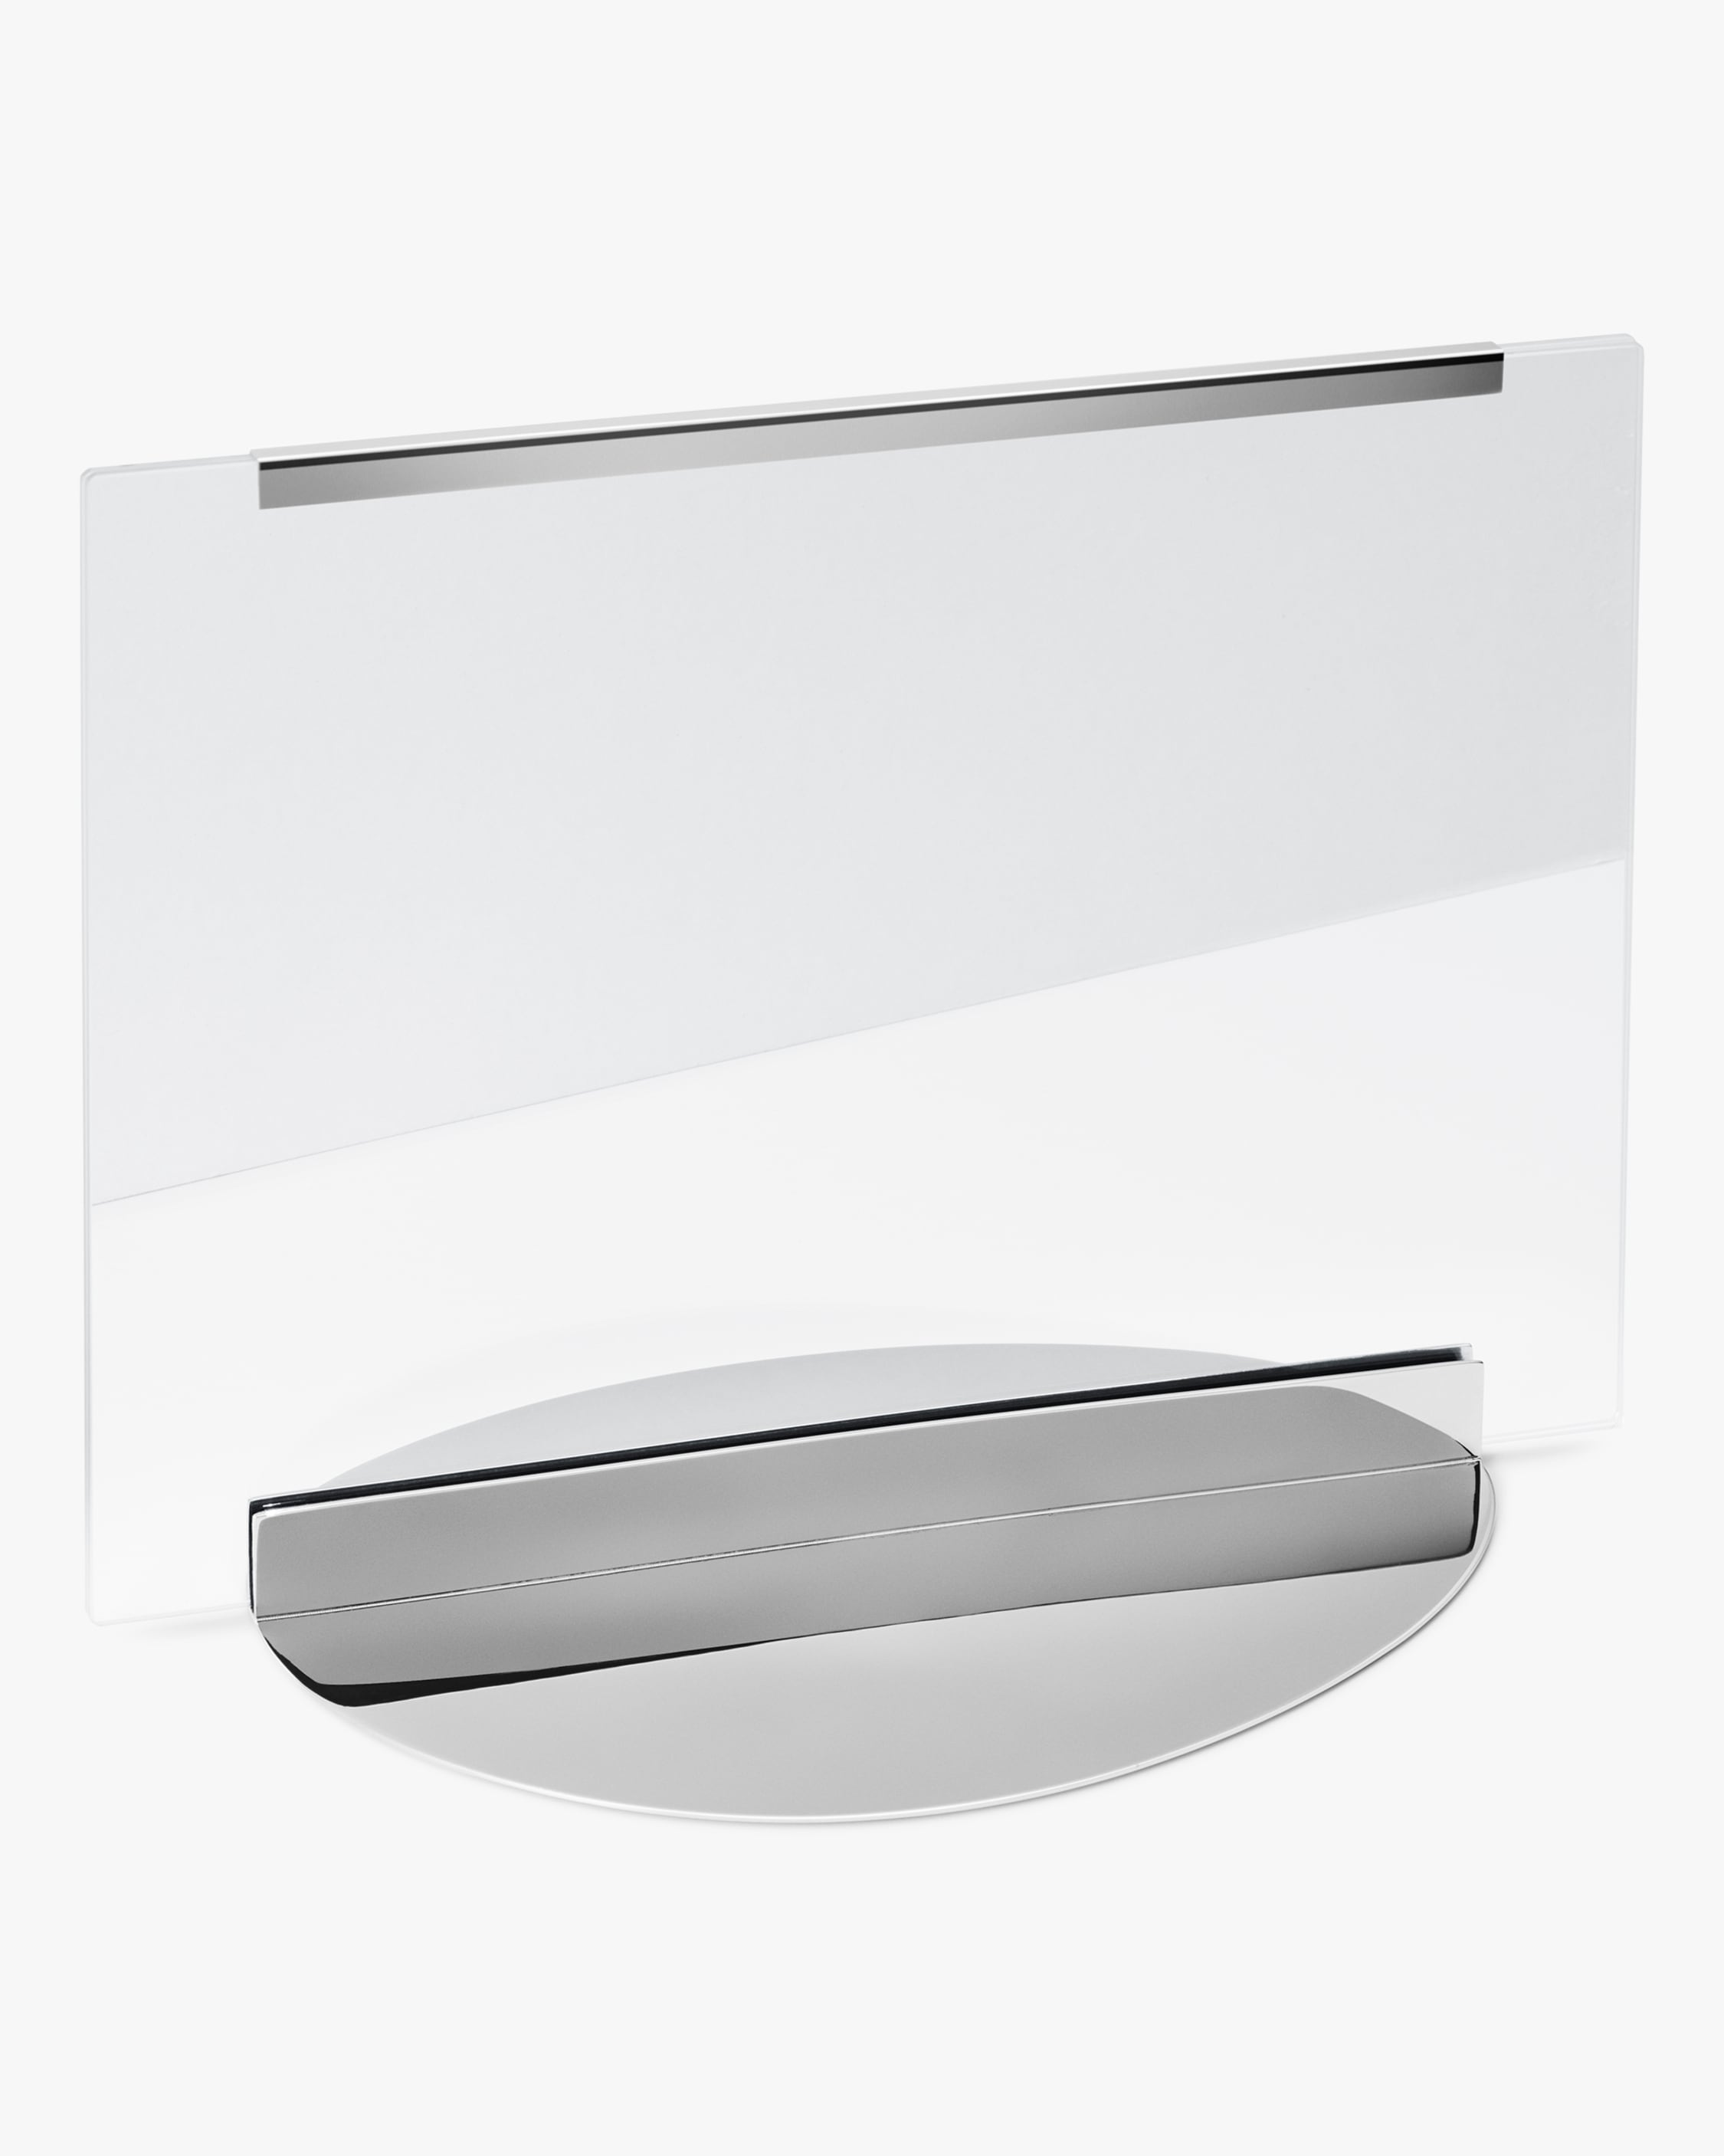 Georg Jensen Sky Stainless Steel Picture Frame - 7x9 1